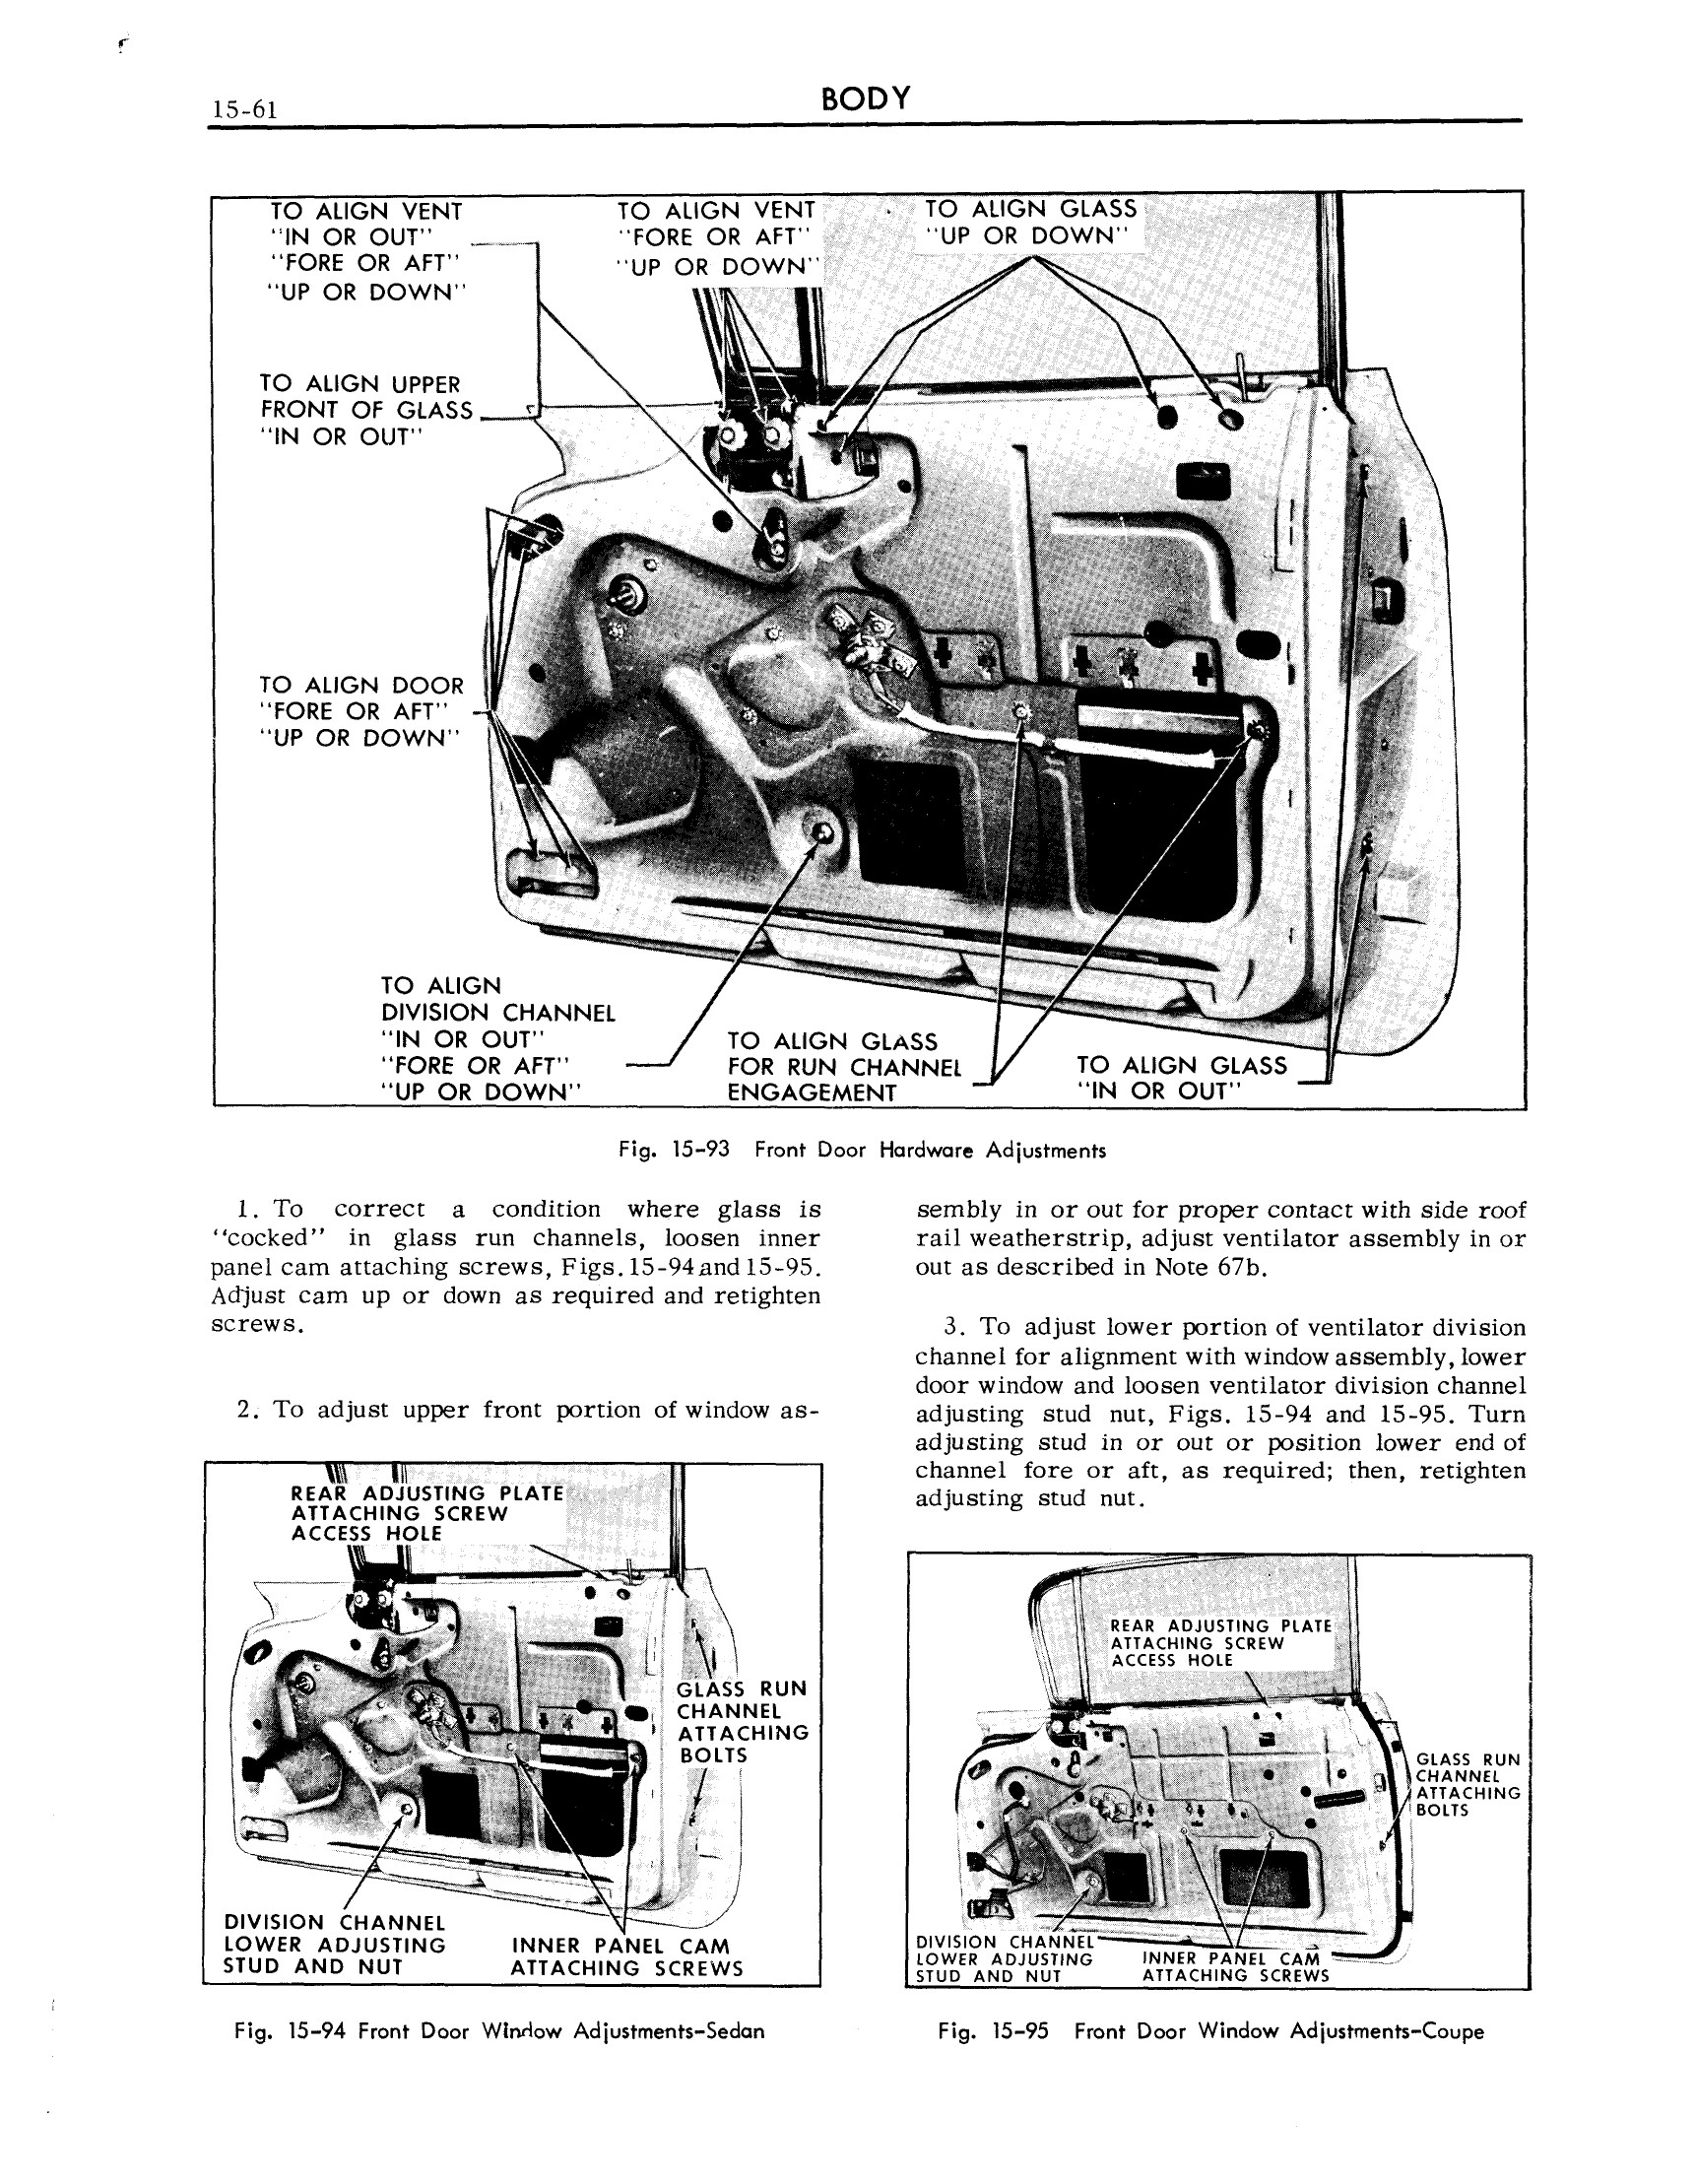 1959 Cadillac Shop Manual- Body Page 61 of 99